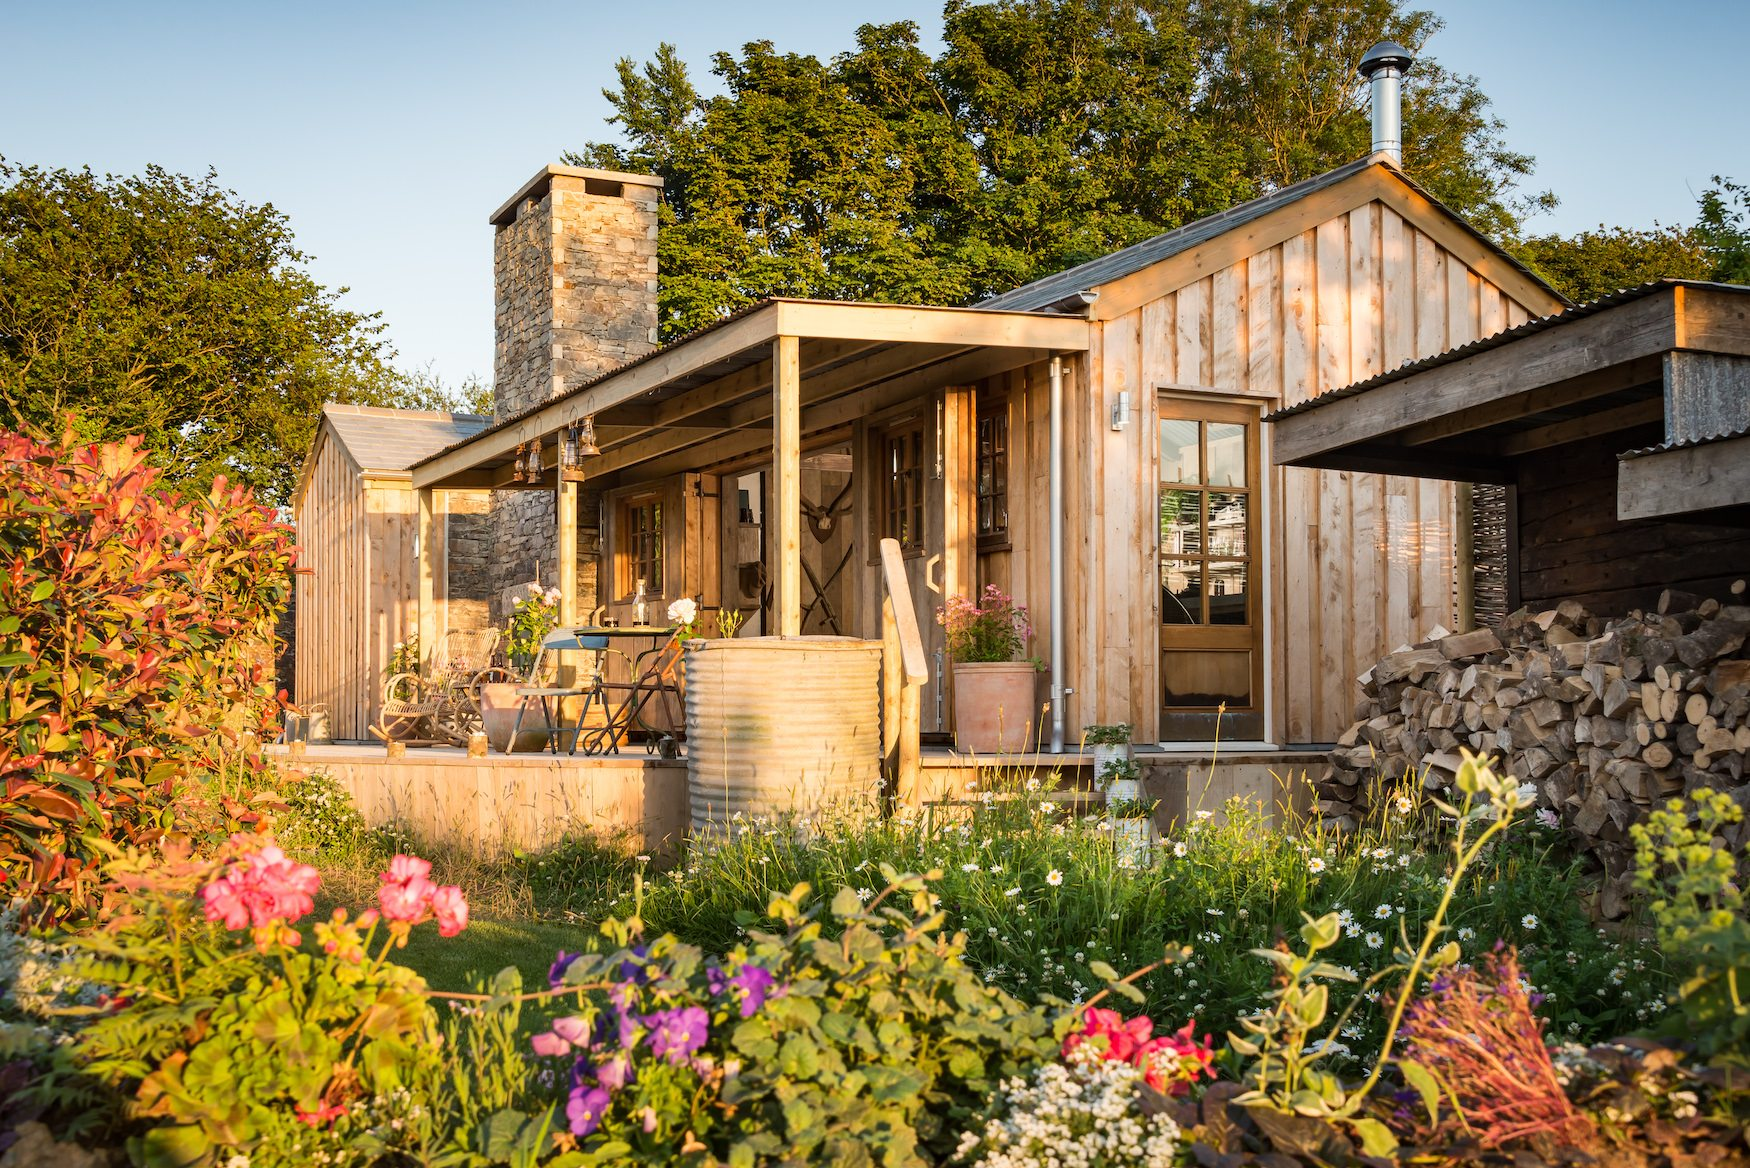 One Look Inside This Gloriously Rustic Tiny Cabin And You\'ll Fall ...